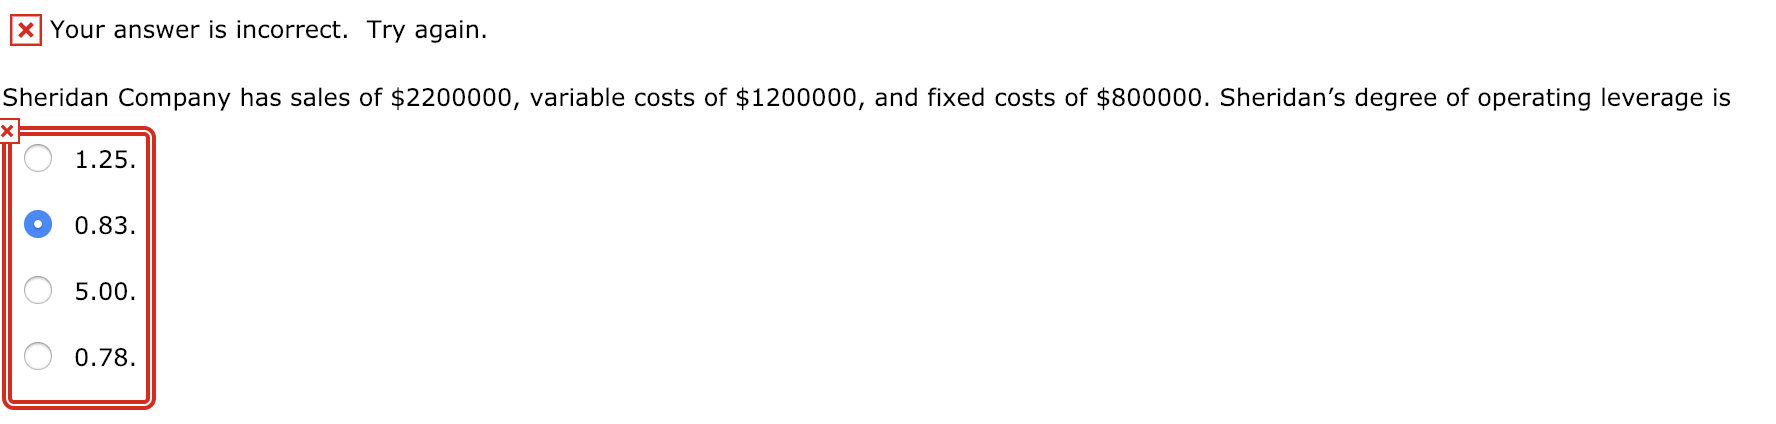 KI Your answer is incorrect. Try again. Sheridan Company has sales of $2200000, variable costs of $1200000, and fixed costs of $800000. Sheridan's degree of operating leverage is 1.25 0.83 5.00 0.78